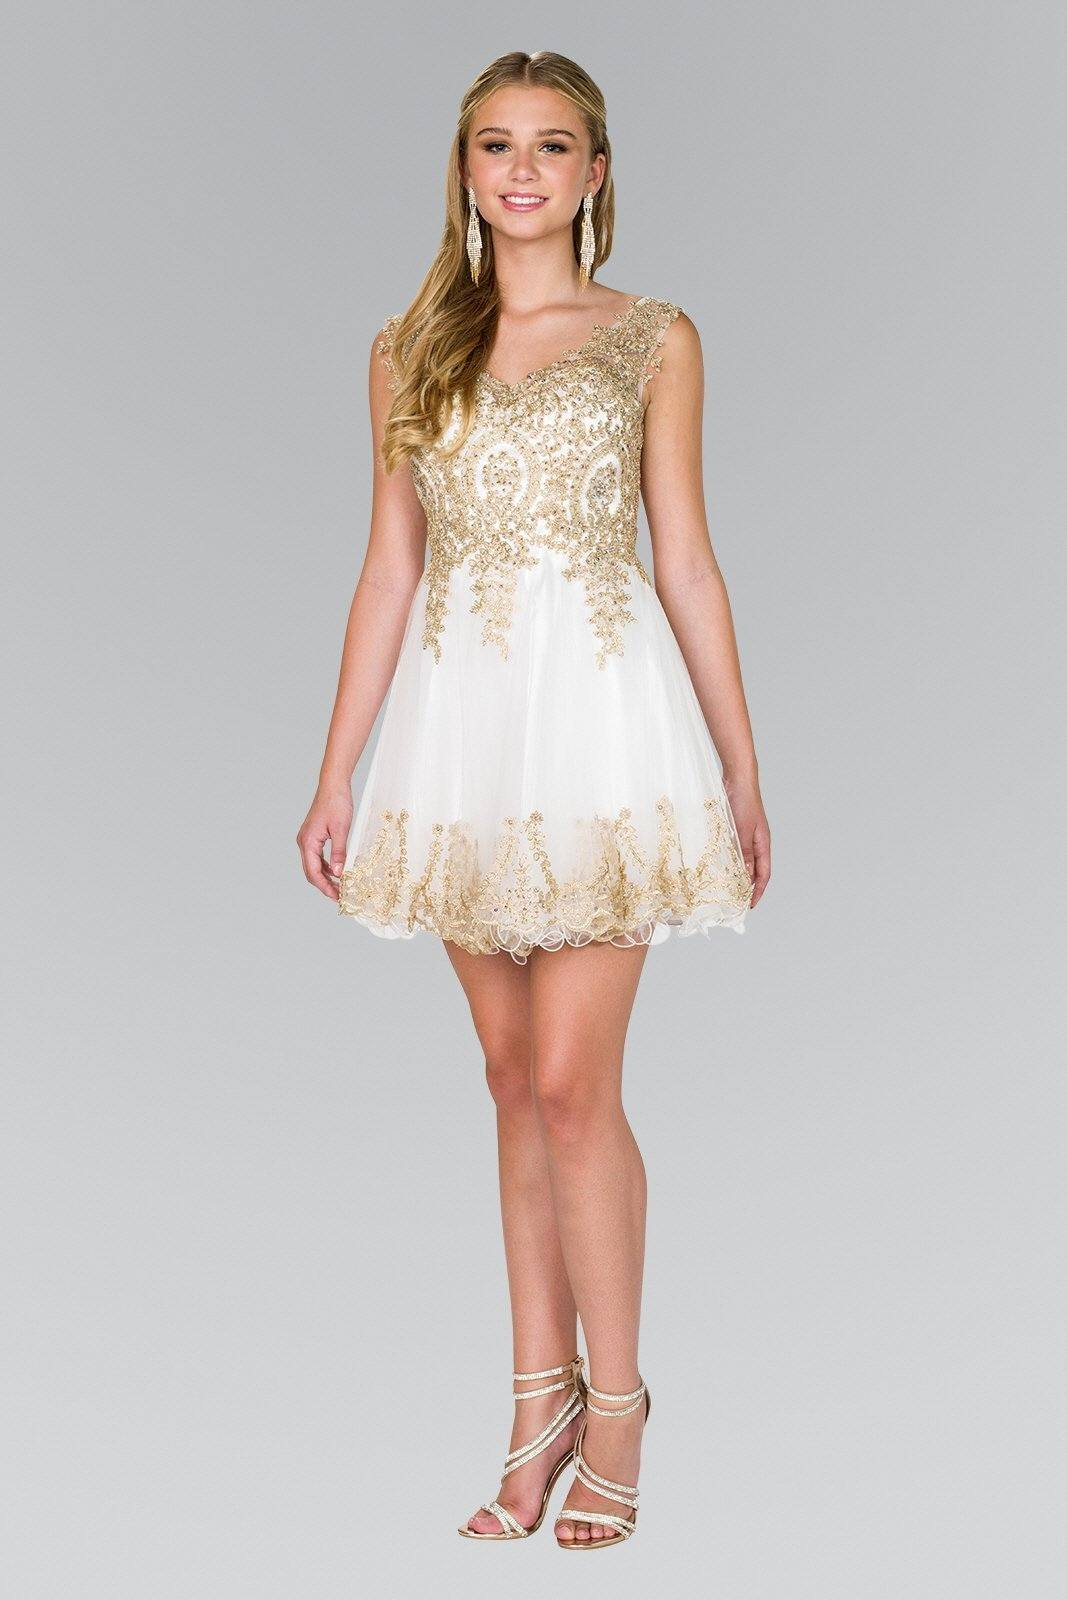 White homecoming dress  with gold beaded bodice  gls #gs2403 - Simply Fab Dress